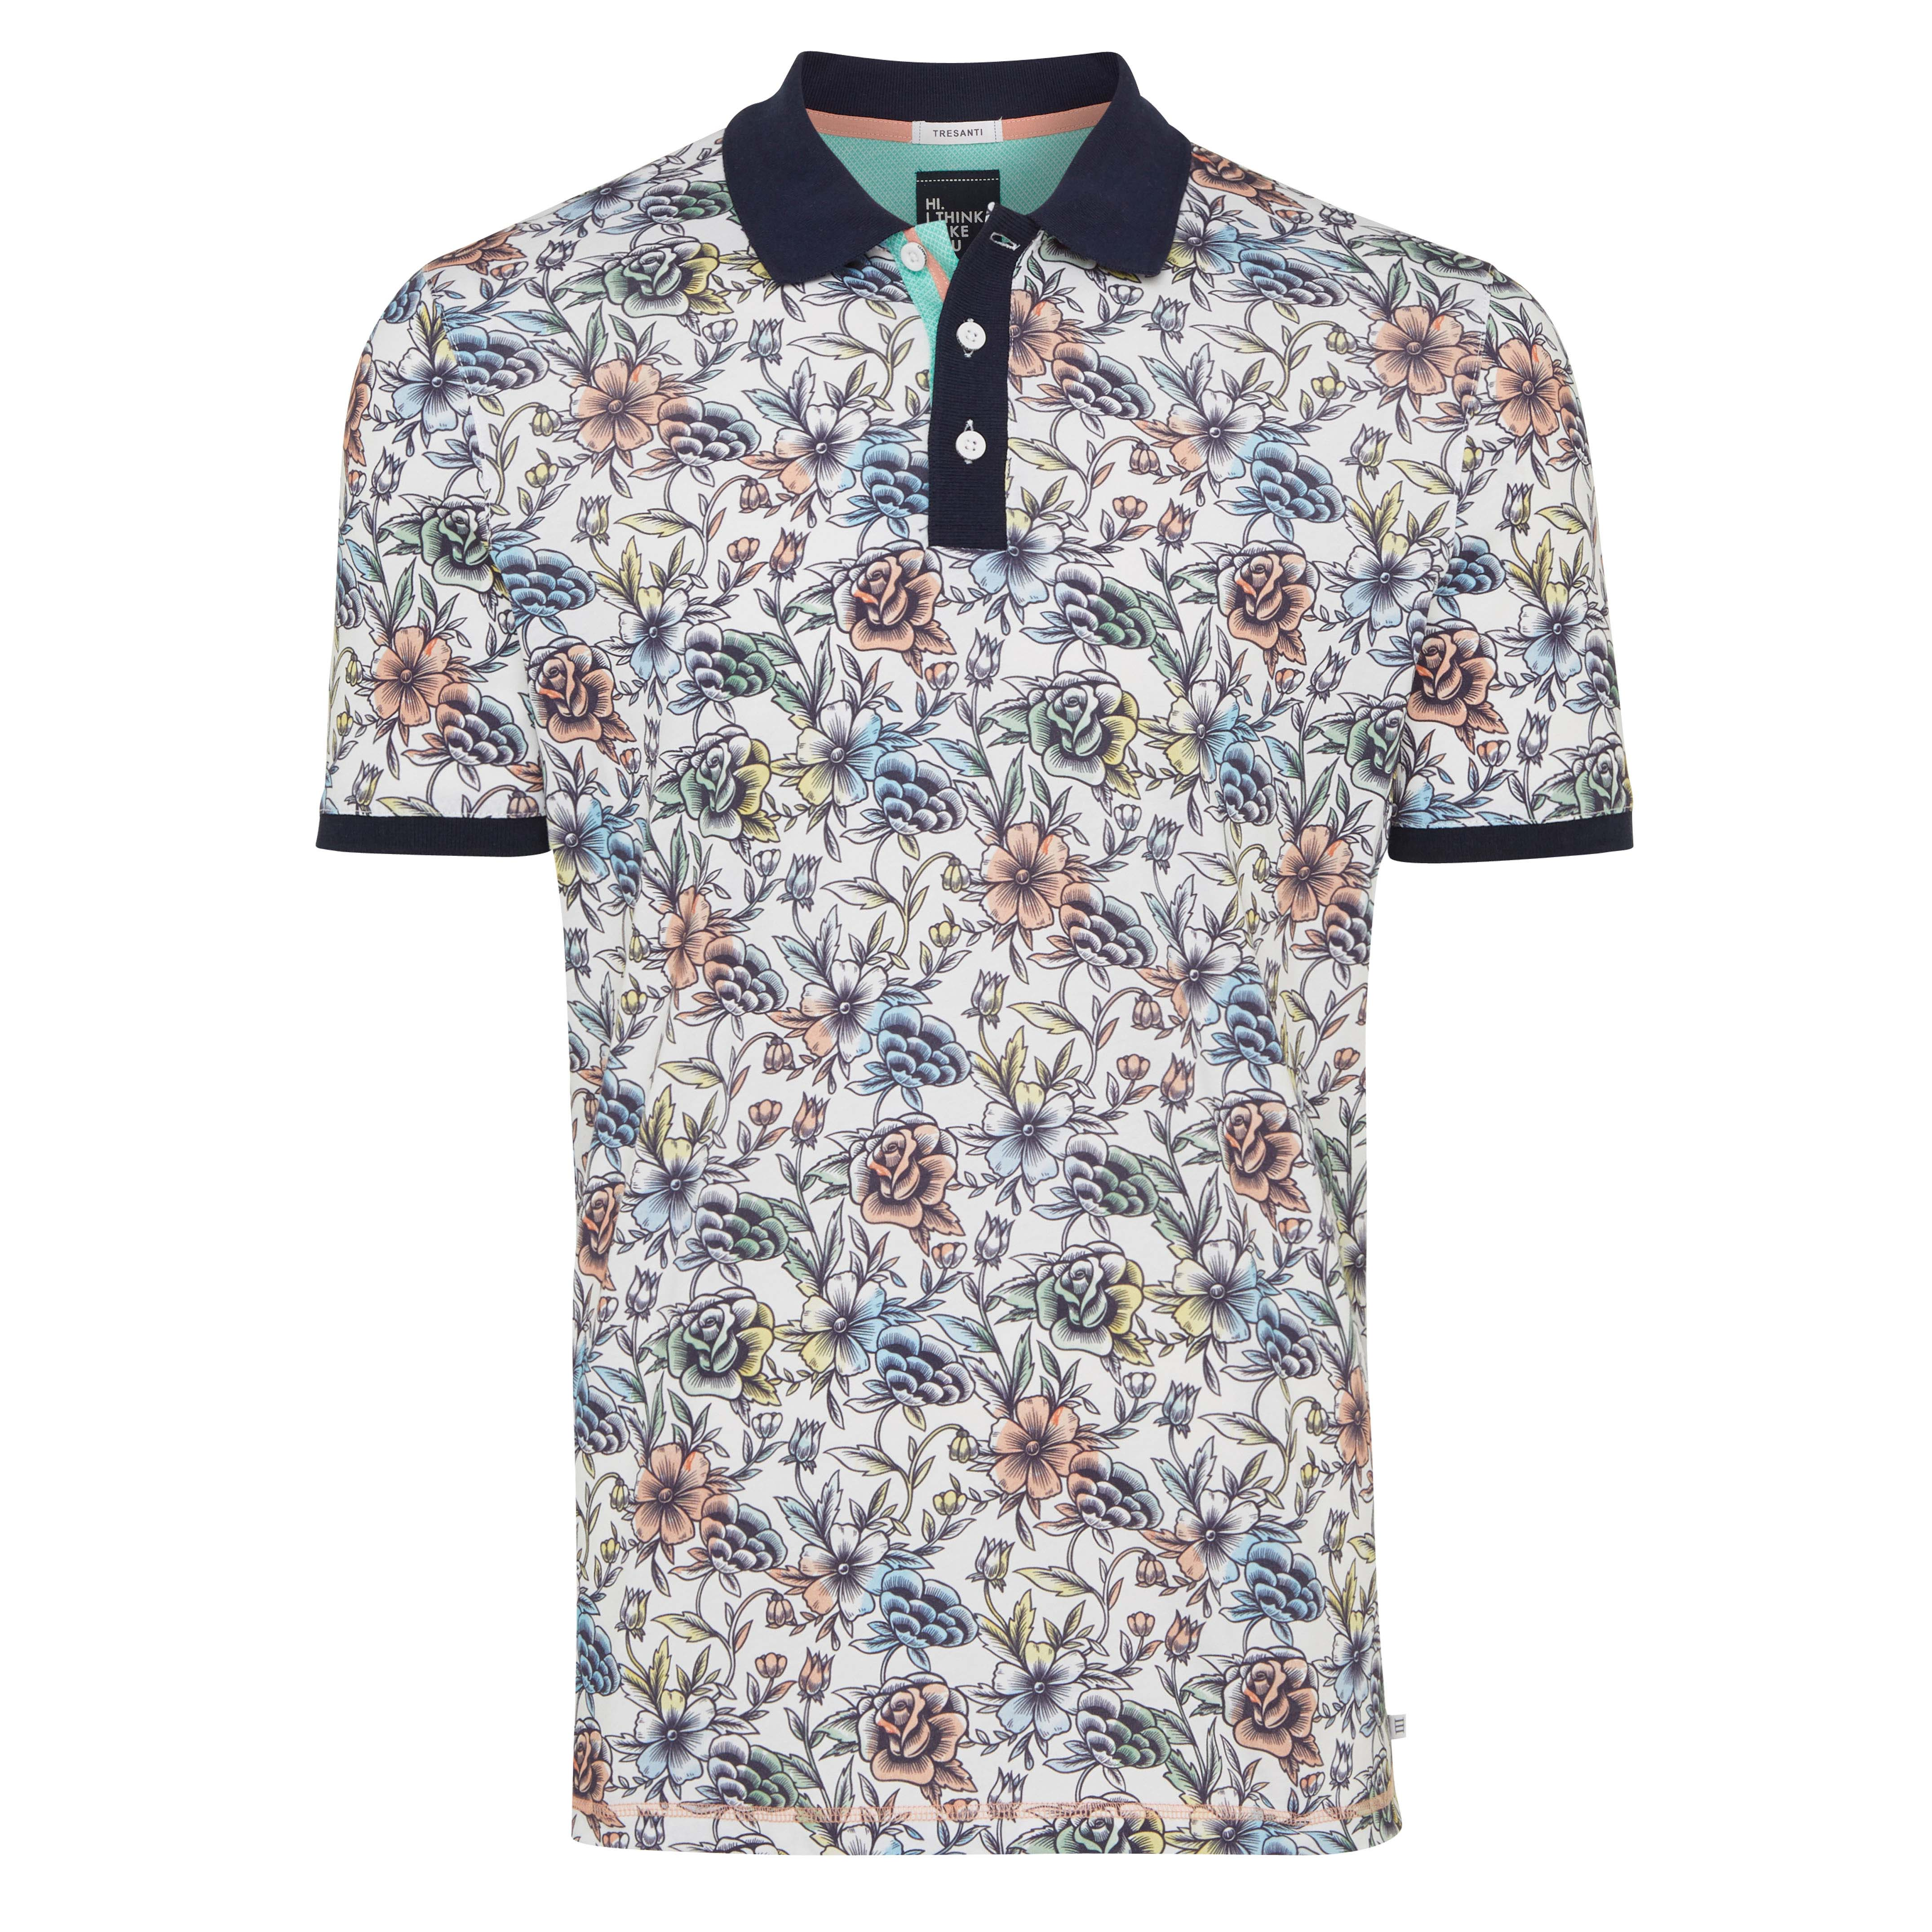 Troy | Poloshirt printed flowers multicolour